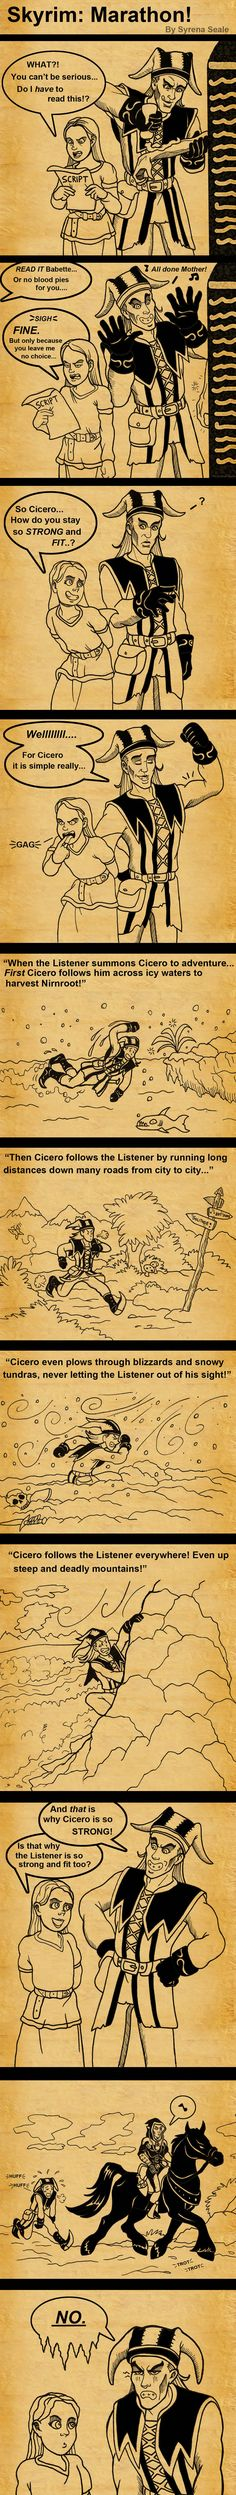 Skyrim Marathon by =SlayerSyrena on deviantART Aww Cicero, maybe the Listener wouldn't be on a horse if you weren't right up their arse all the time.